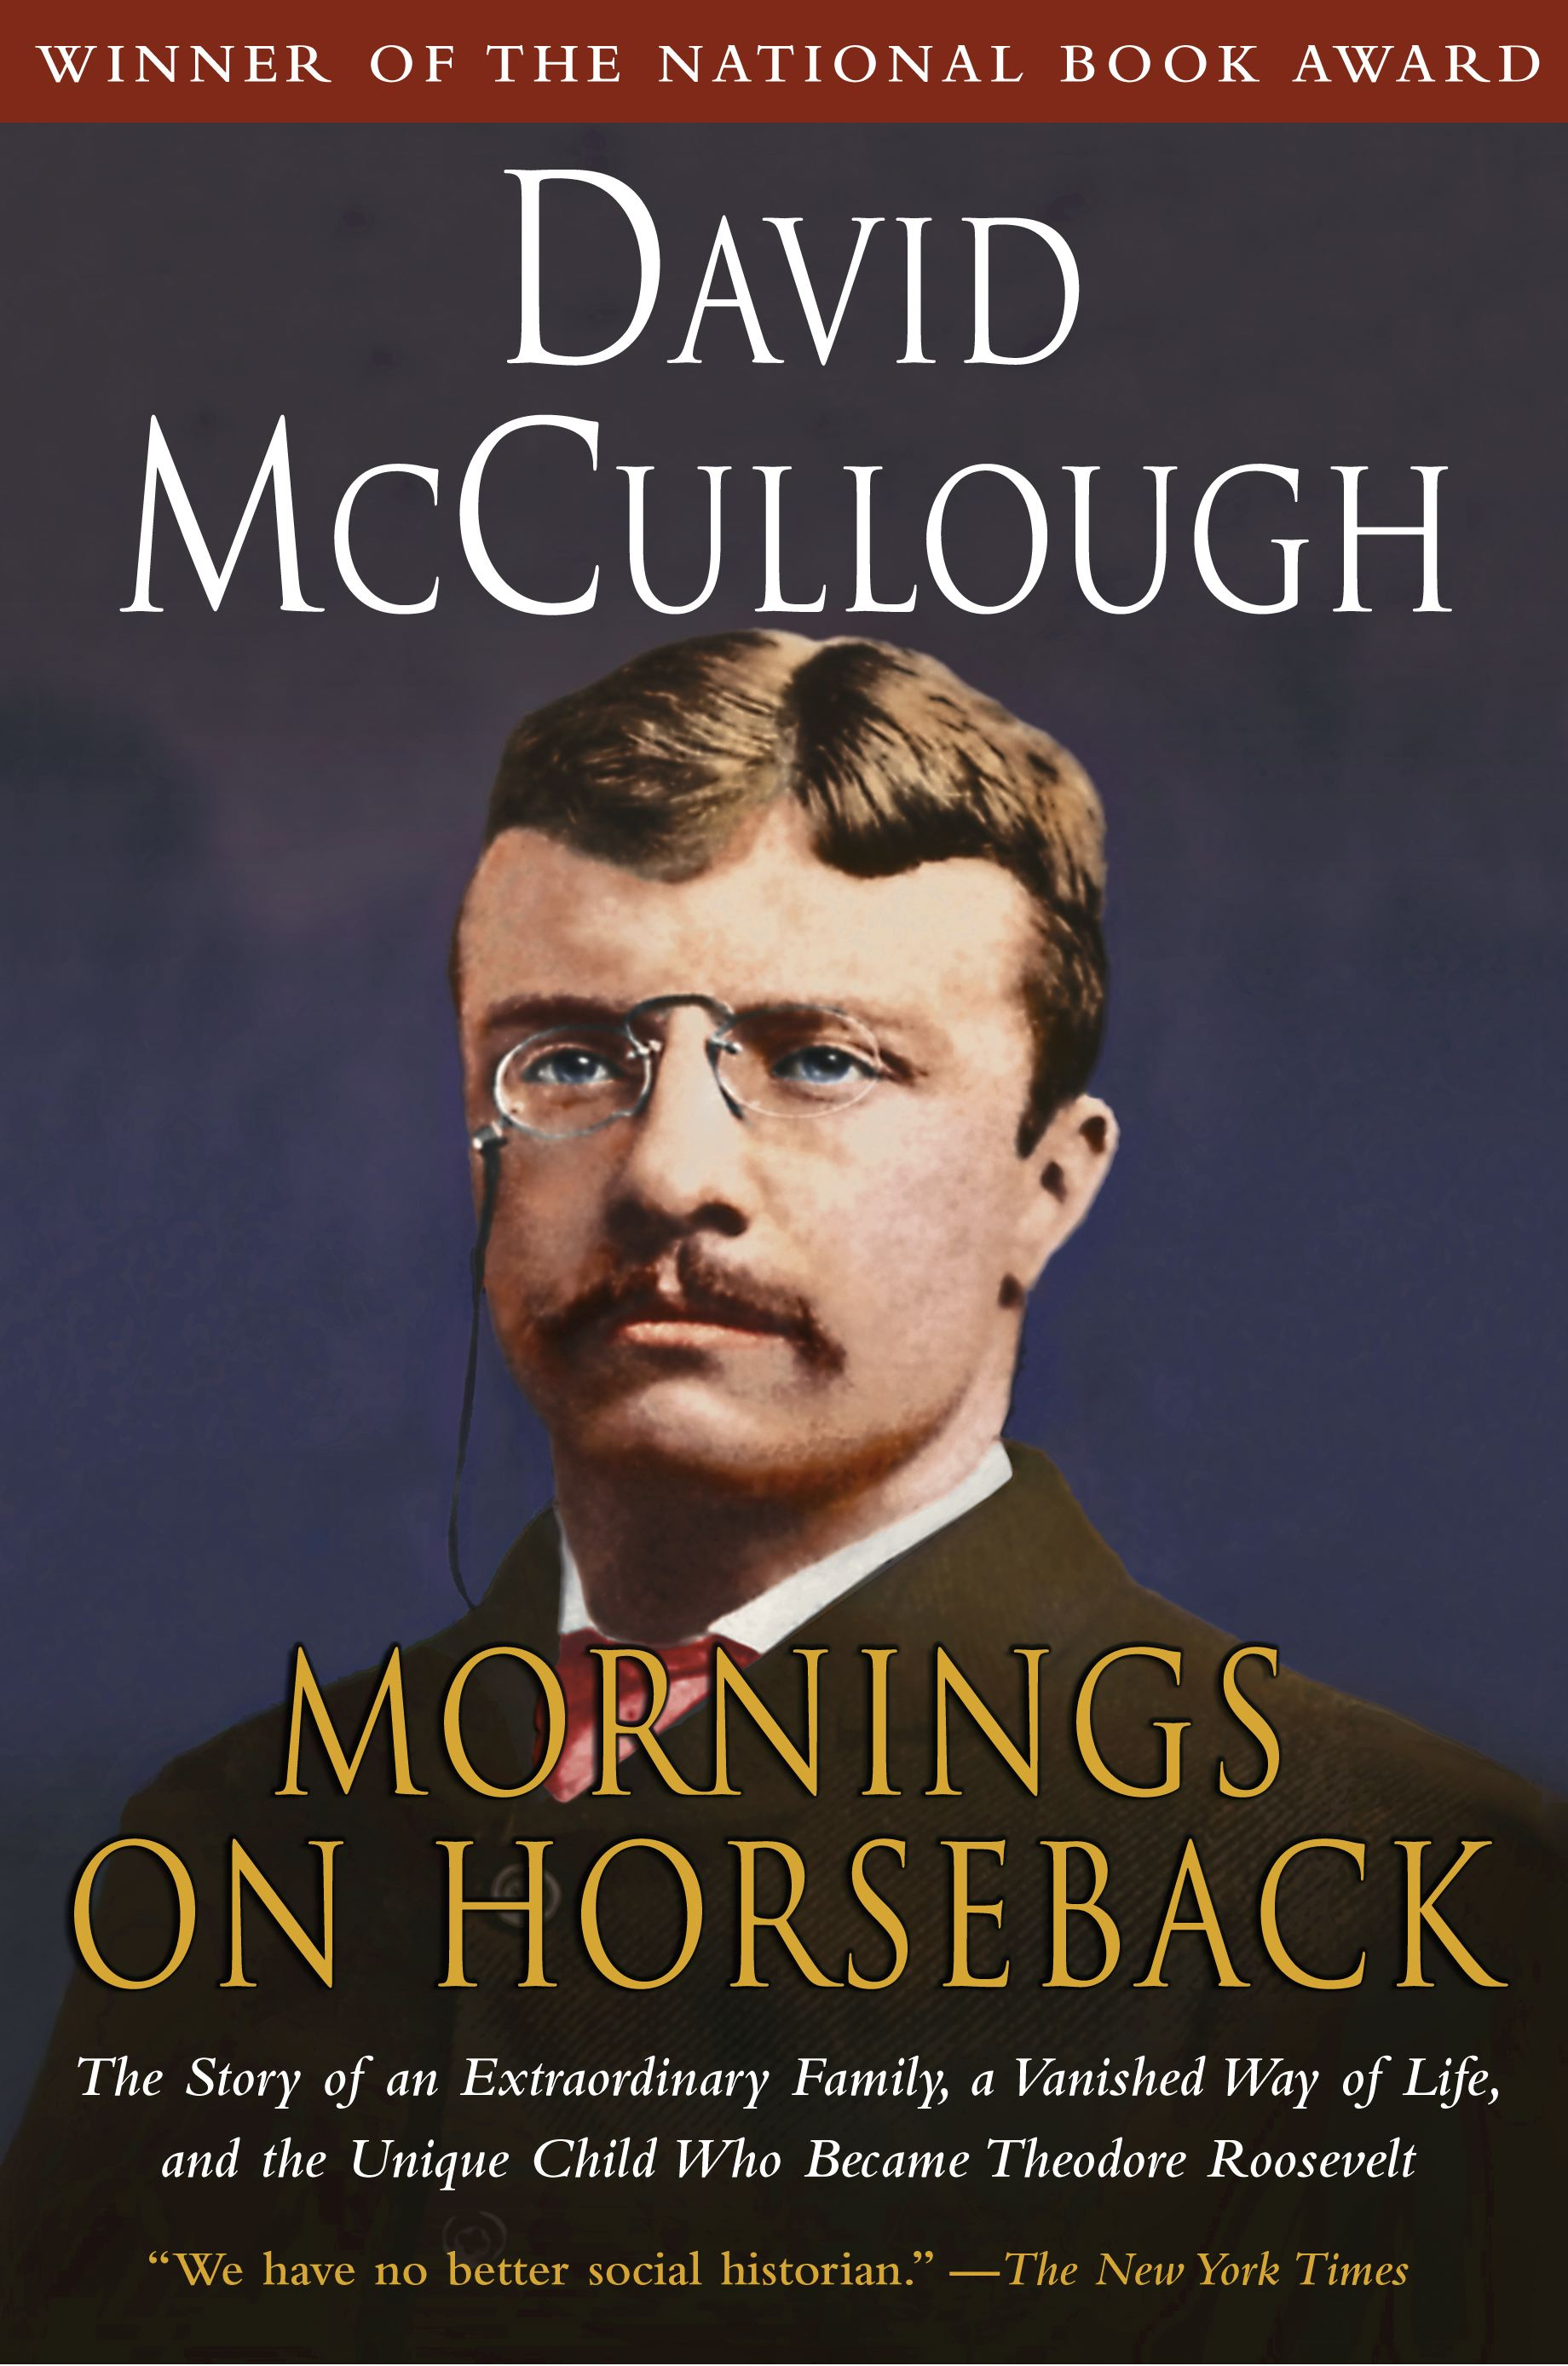 Mornings on Horseback | Book by David McCullough | Official Publisher Page | Simon & Schuster